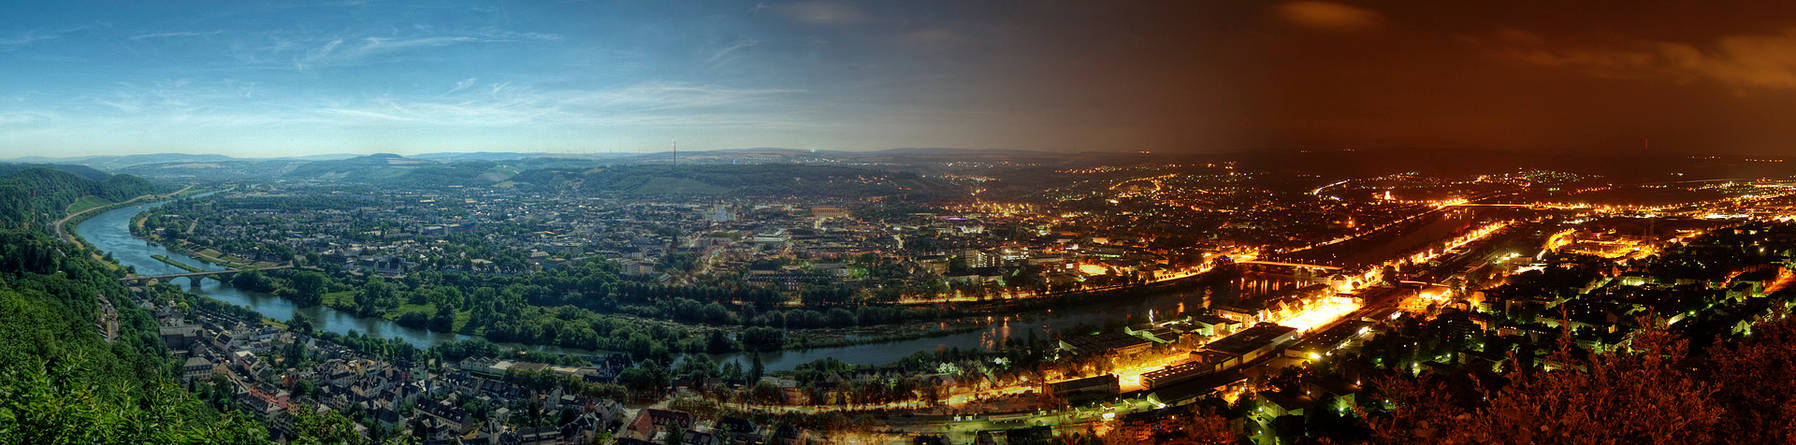 Trier - Day to Night Panorama